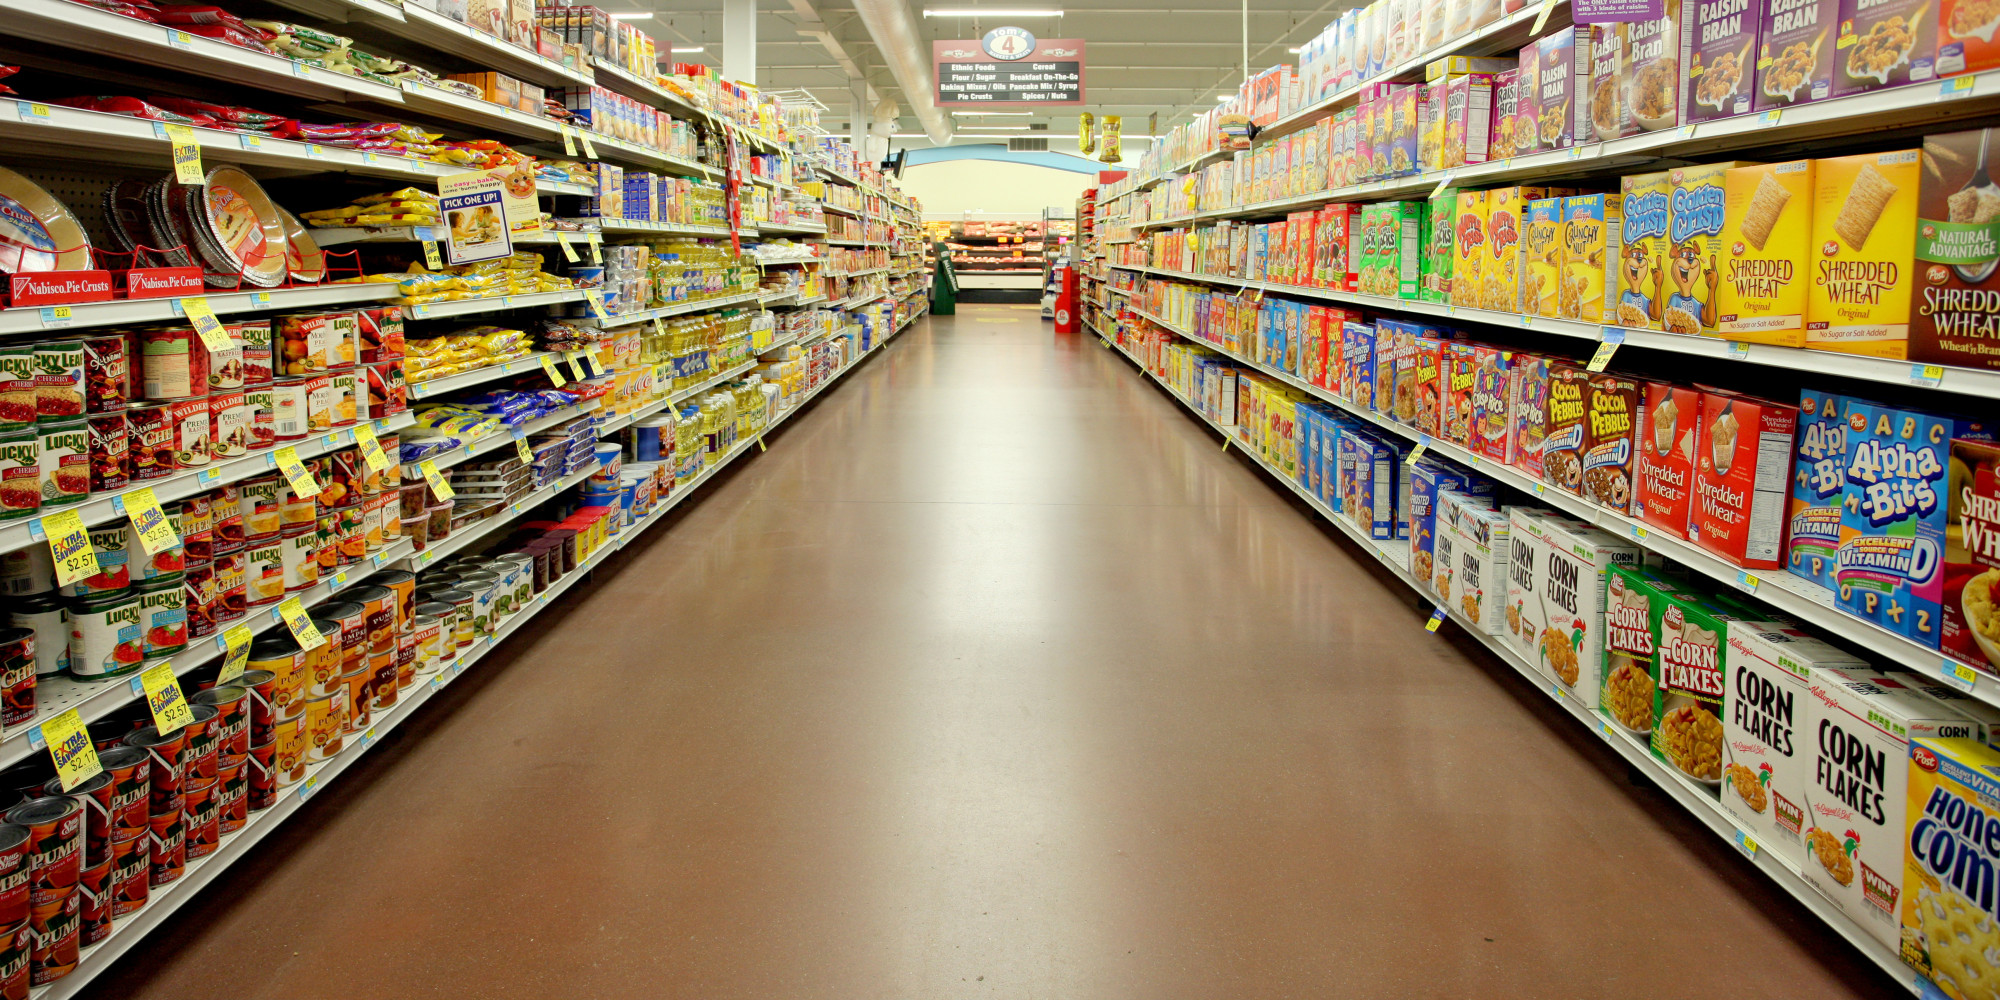 Grocery Stores image